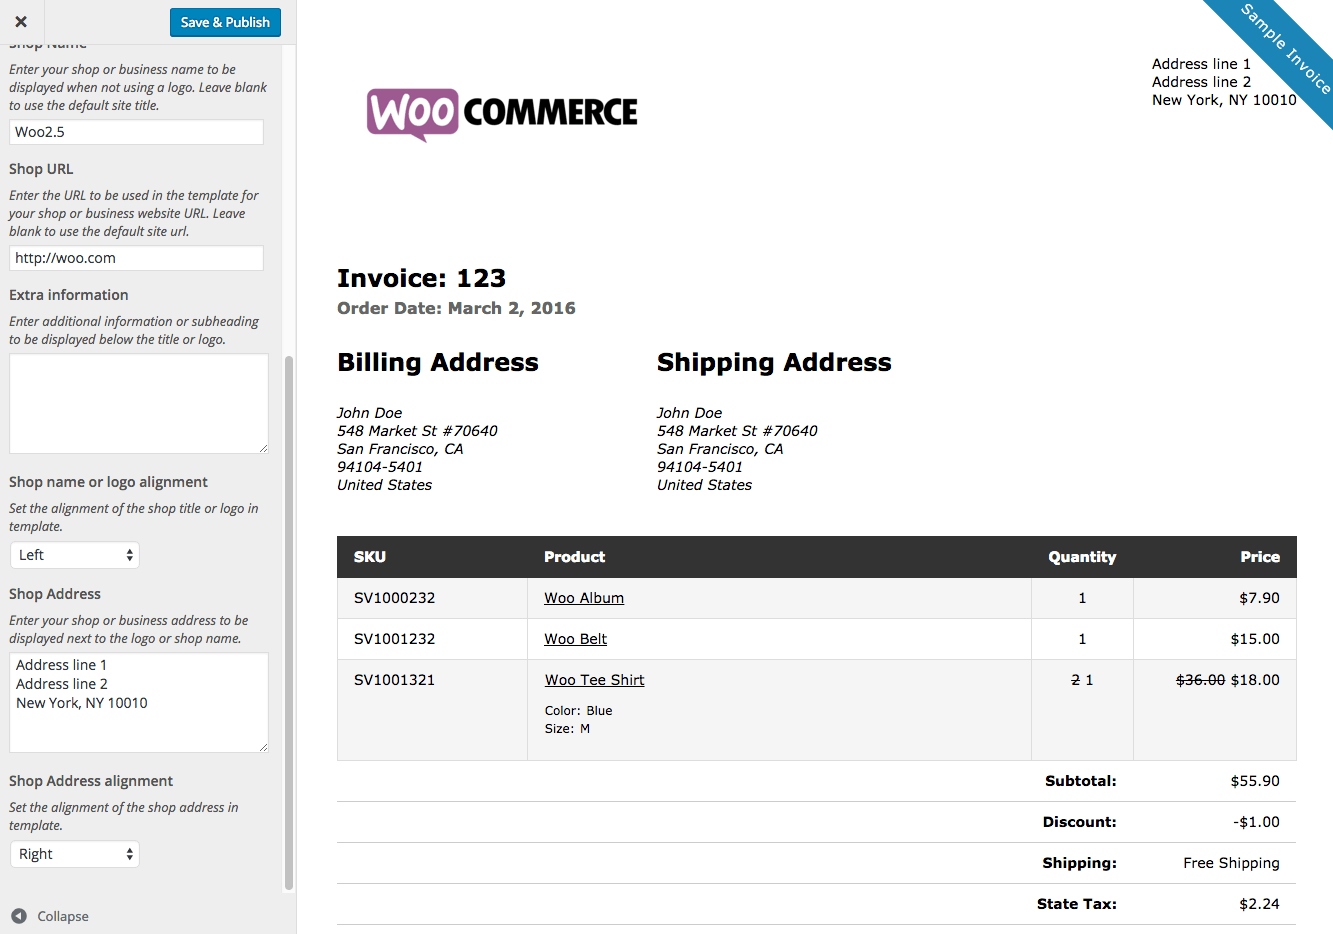 Ebitus  Pretty Woocommerce Print Invoices Amp Packing Lists  Woocommerce Docs With Exquisite Woocommerce Print Invoices  Packing Lists Customizer With Amazing Rent Deposit Receipt Also Receipt Software For Small Business Free In Addition London Cab Receipt And Receipt Of Remittance As Well As Rent Receipt Tax Exemption Additionally Replacement Receipt From Docswoocommercecom With Ebitus  Exquisite Woocommerce Print Invoices Amp Packing Lists  Woocommerce Docs With Amazing Woocommerce Print Invoices  Packing Lists Customizer And Pretty Rent Deposit Receipt Also Receipt Software For Small Business Free In Addition London Cab Receipt From Docswoocommercecom